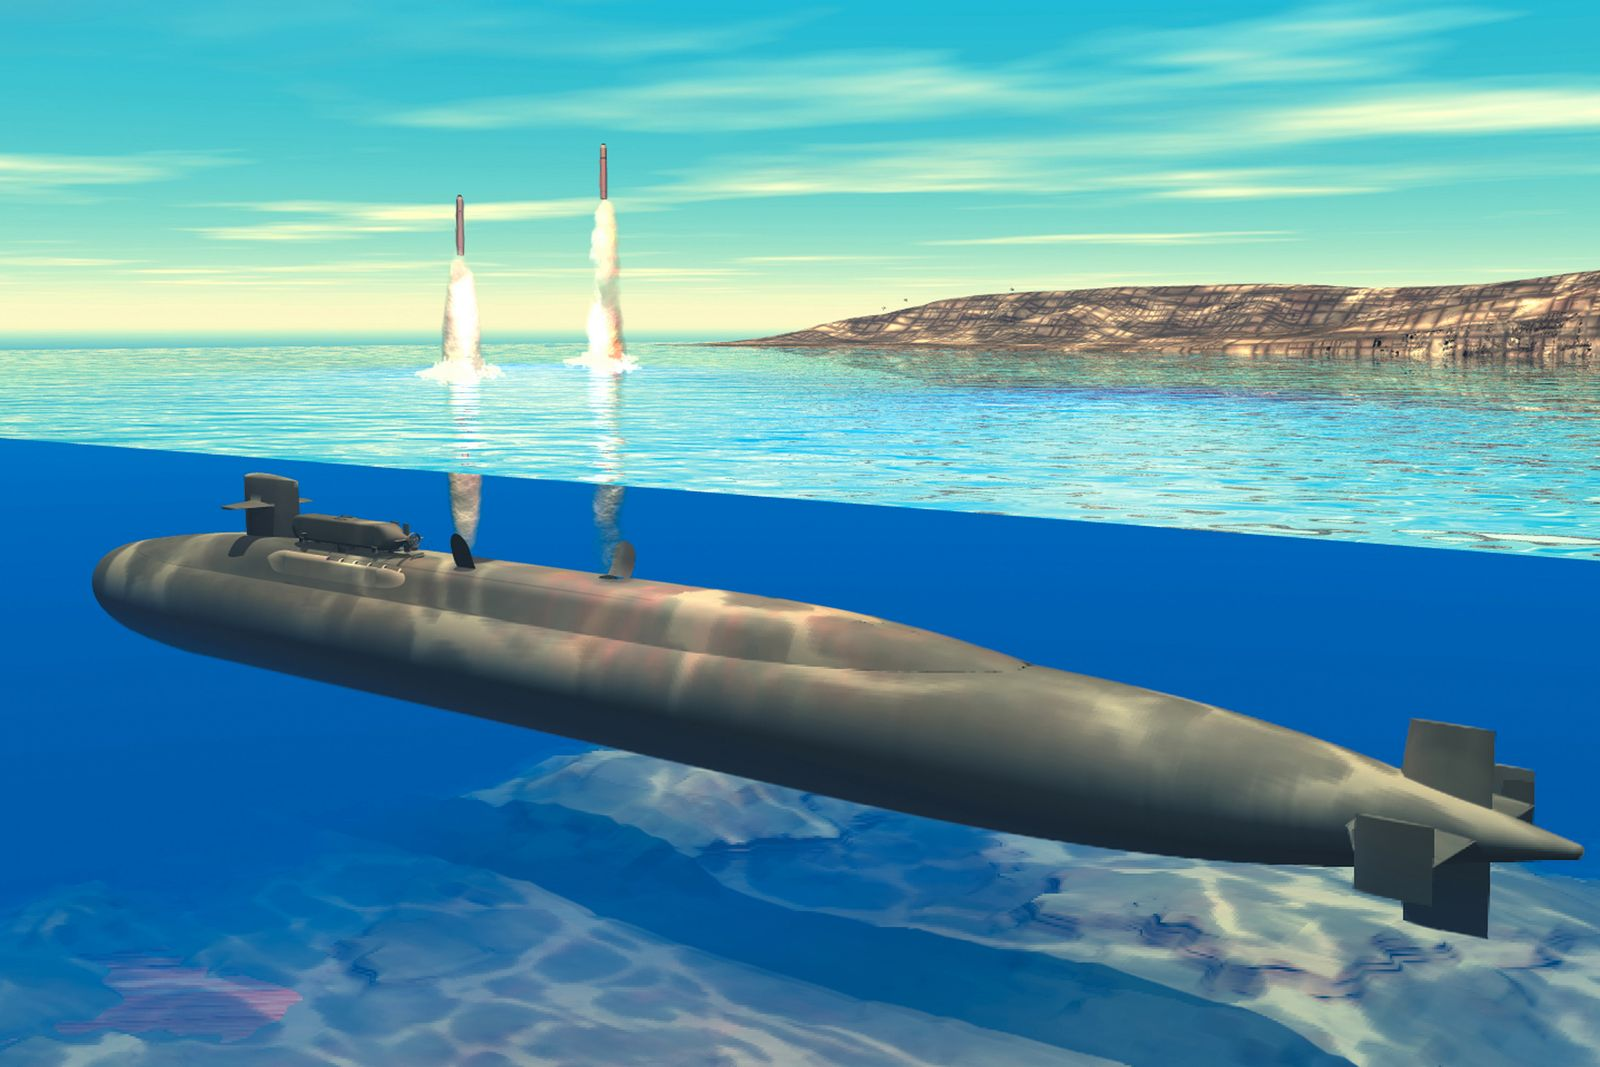 The U.S. Navy Wants Nuclear Missiles That Self-Destruct Themselves